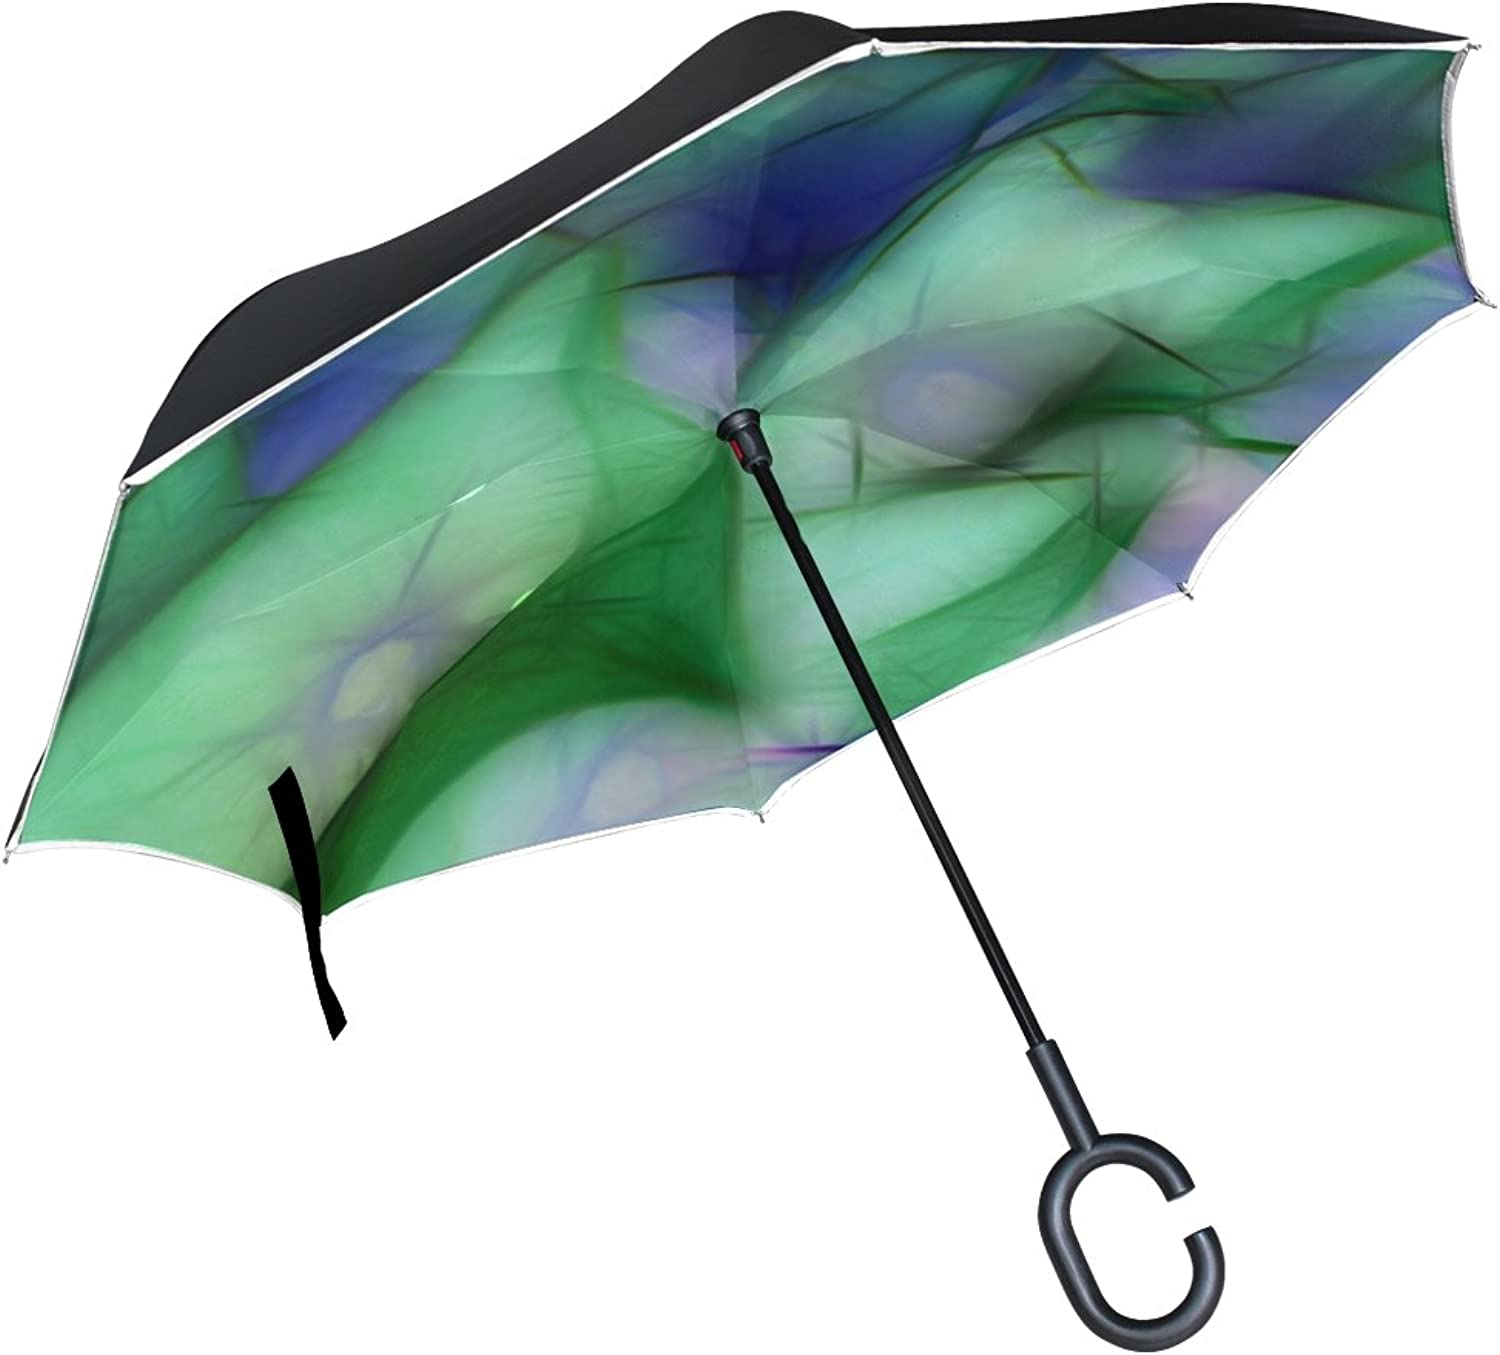 Double Layer Ingreened Pattern Abstract blueee Green Umbrellas Reverse Folding Umbrella Windproof Uv Predection Big Straight Umbrella for Car Rain Outdoor with CShaped Handle